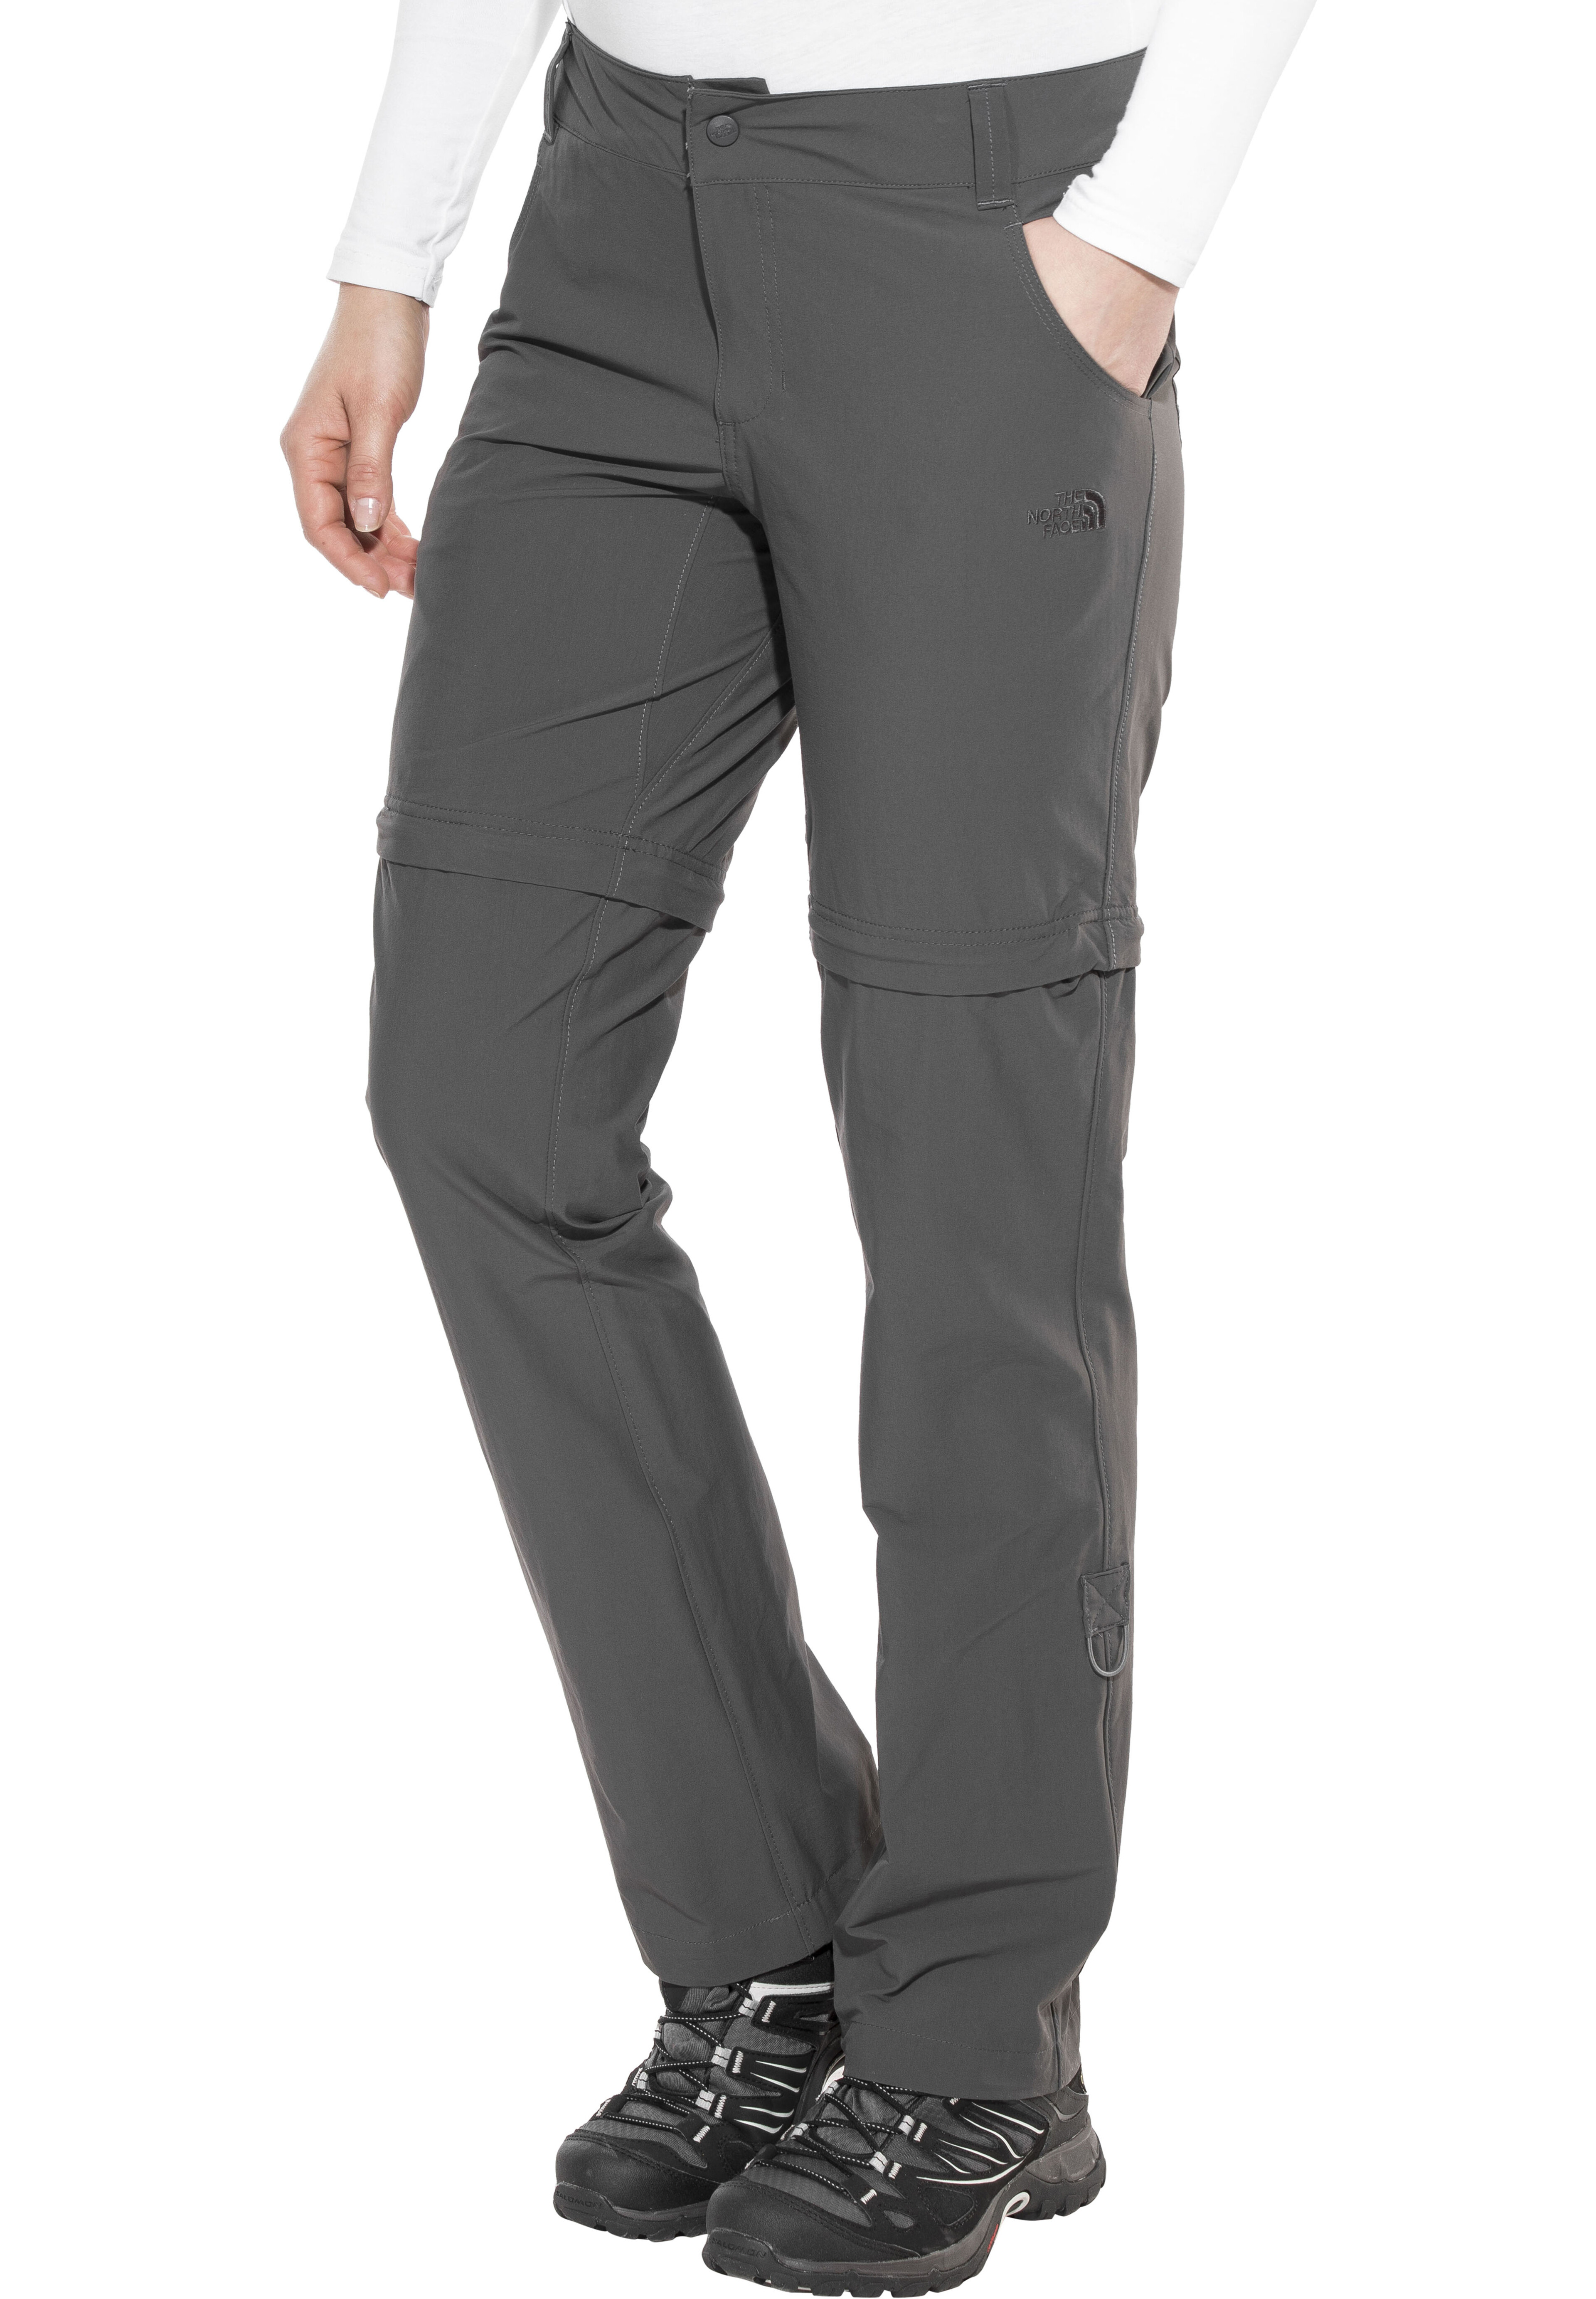 39cde6d75 The North Face Exploration Convertible Pants regular Women asphalt grey